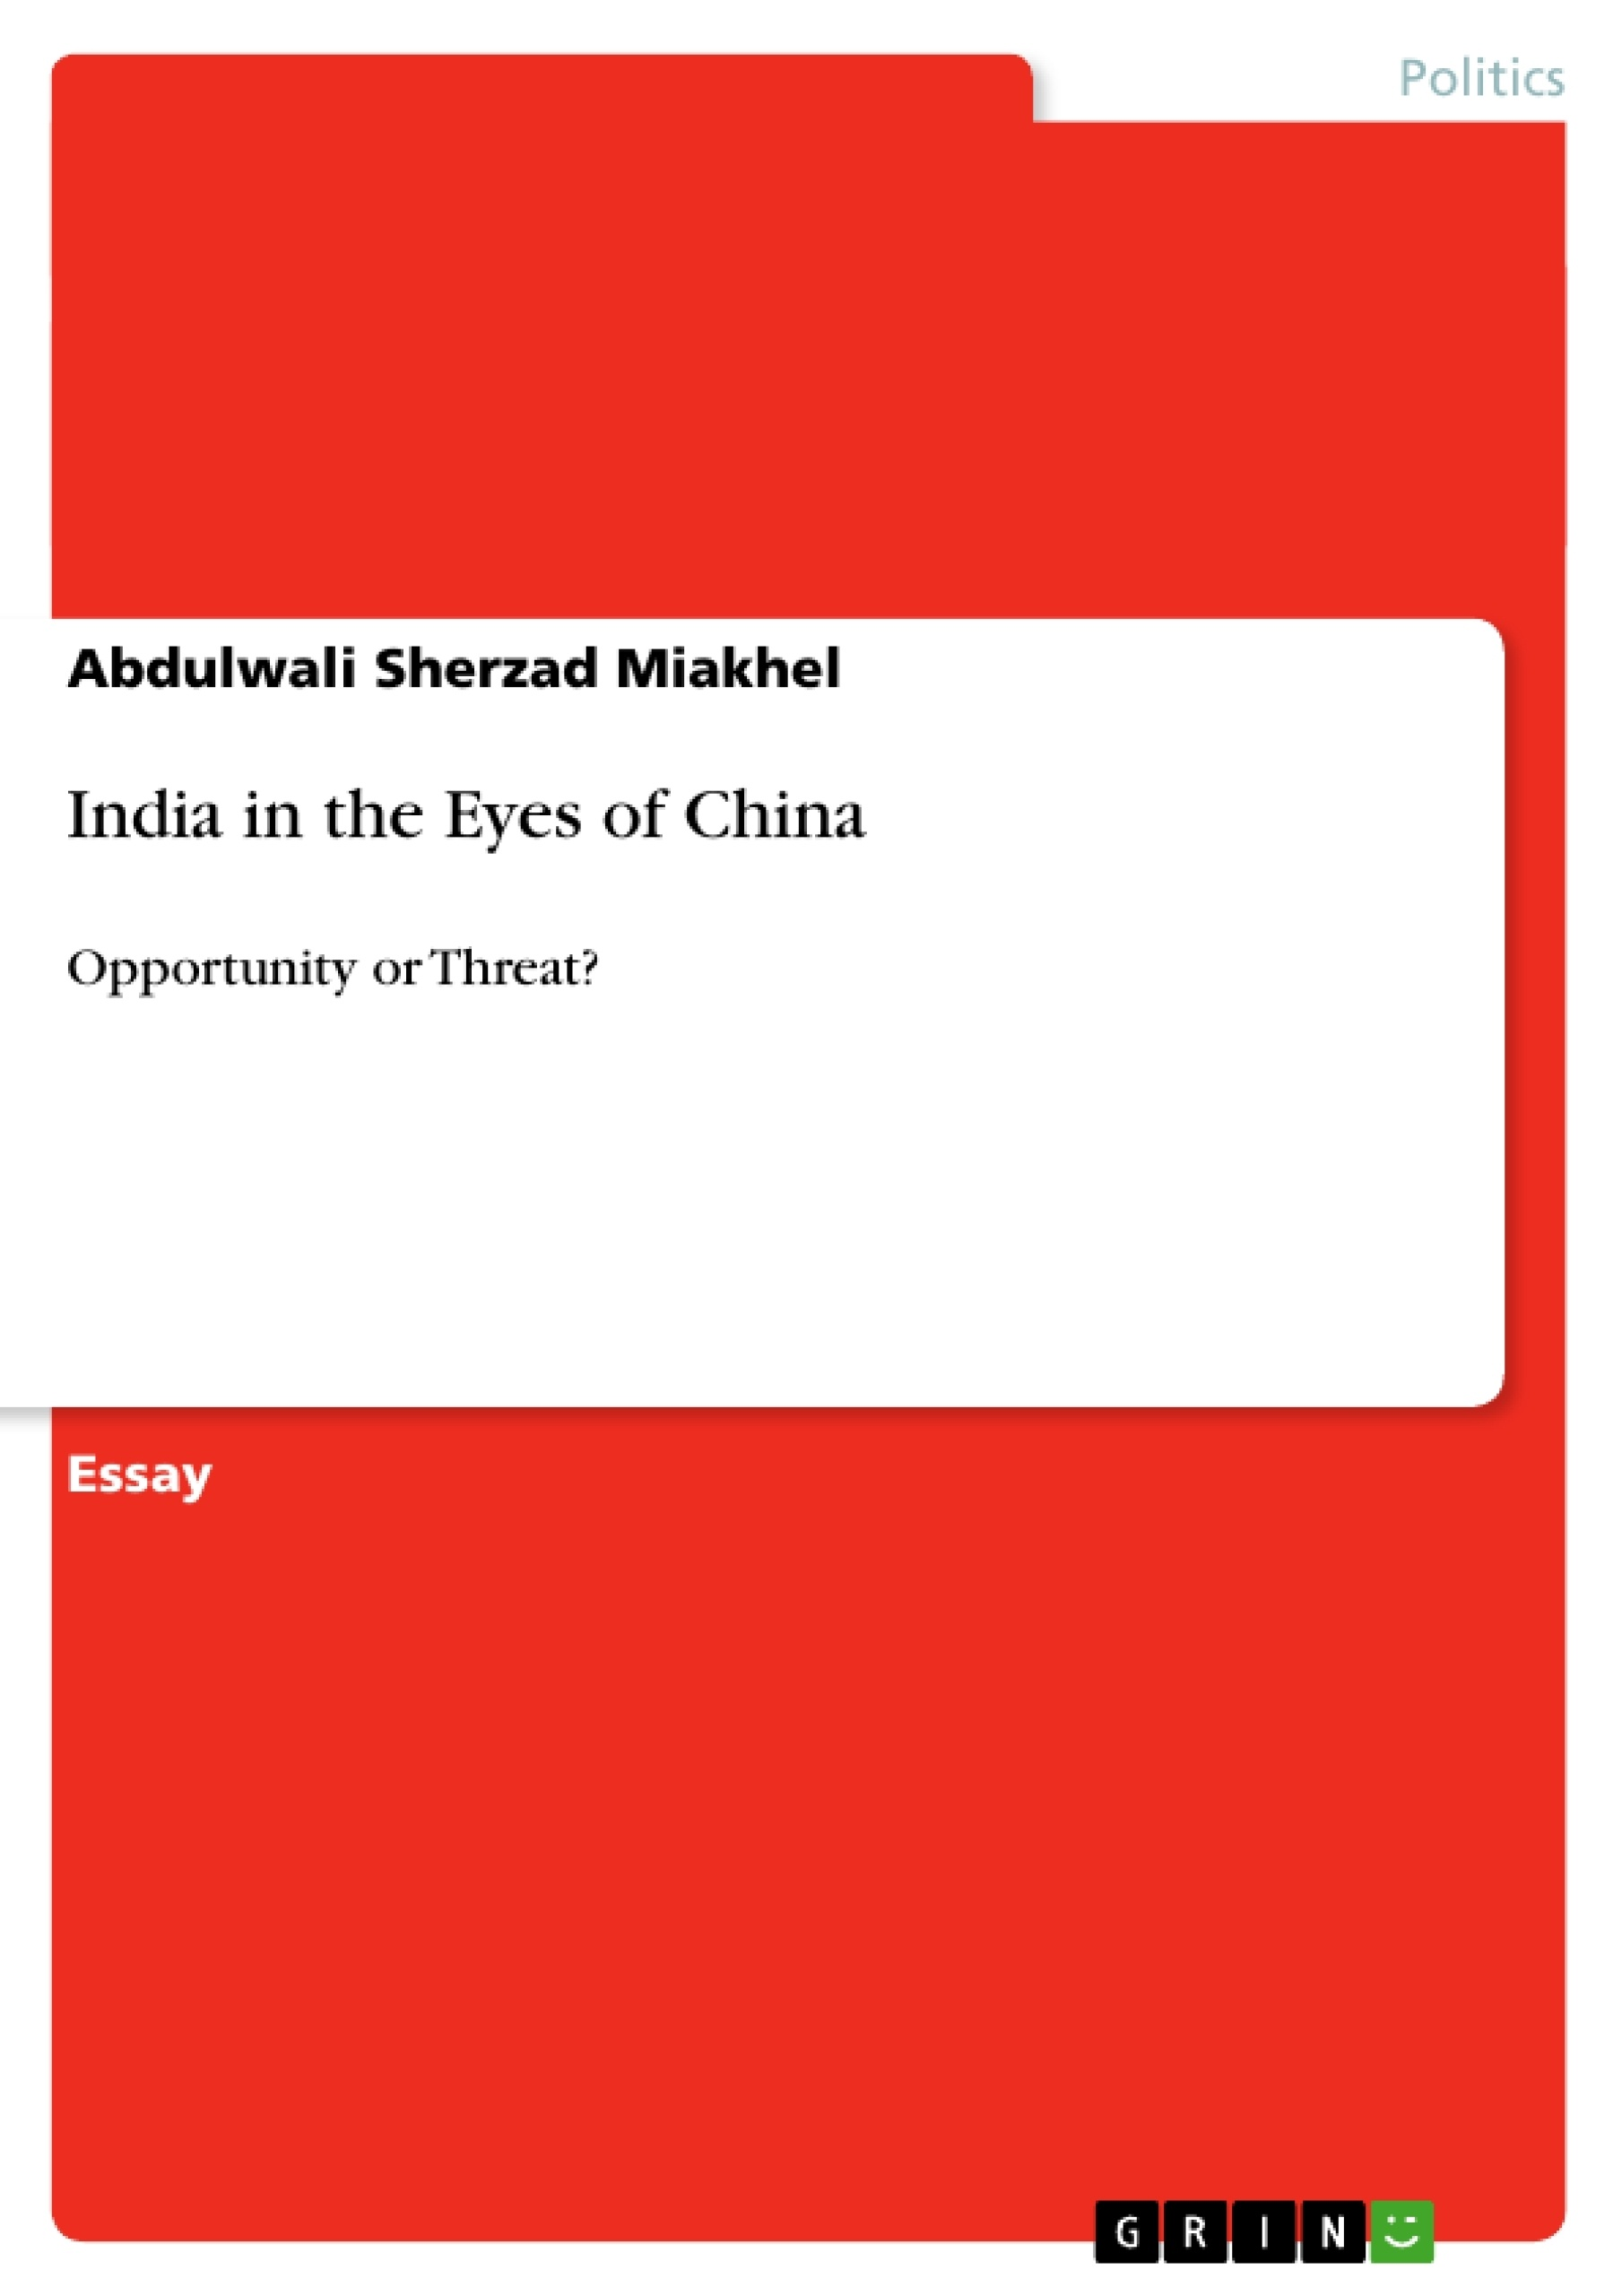 china a threat to india essays